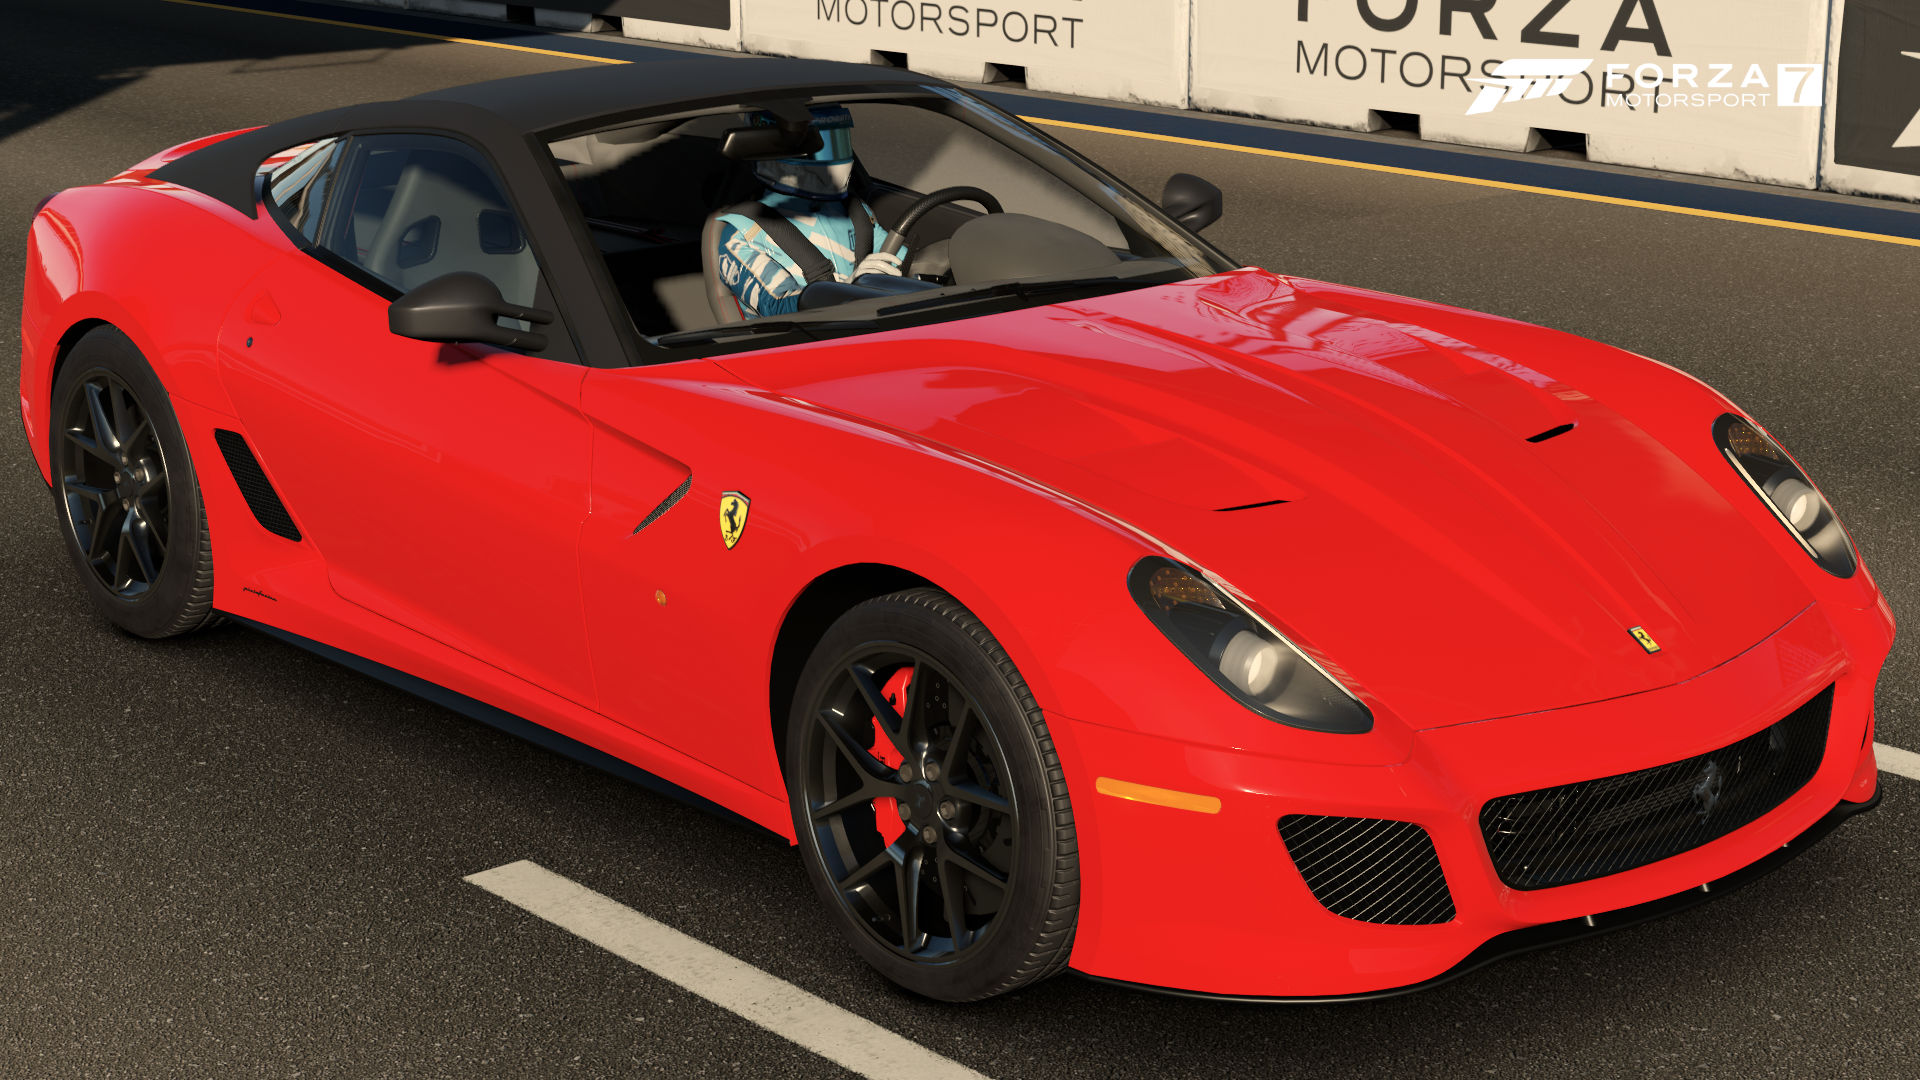 ferrari 599 gto forza motorsport wiki fandom powered. Black Bedroom Furniture Sets. Home Design Ideas